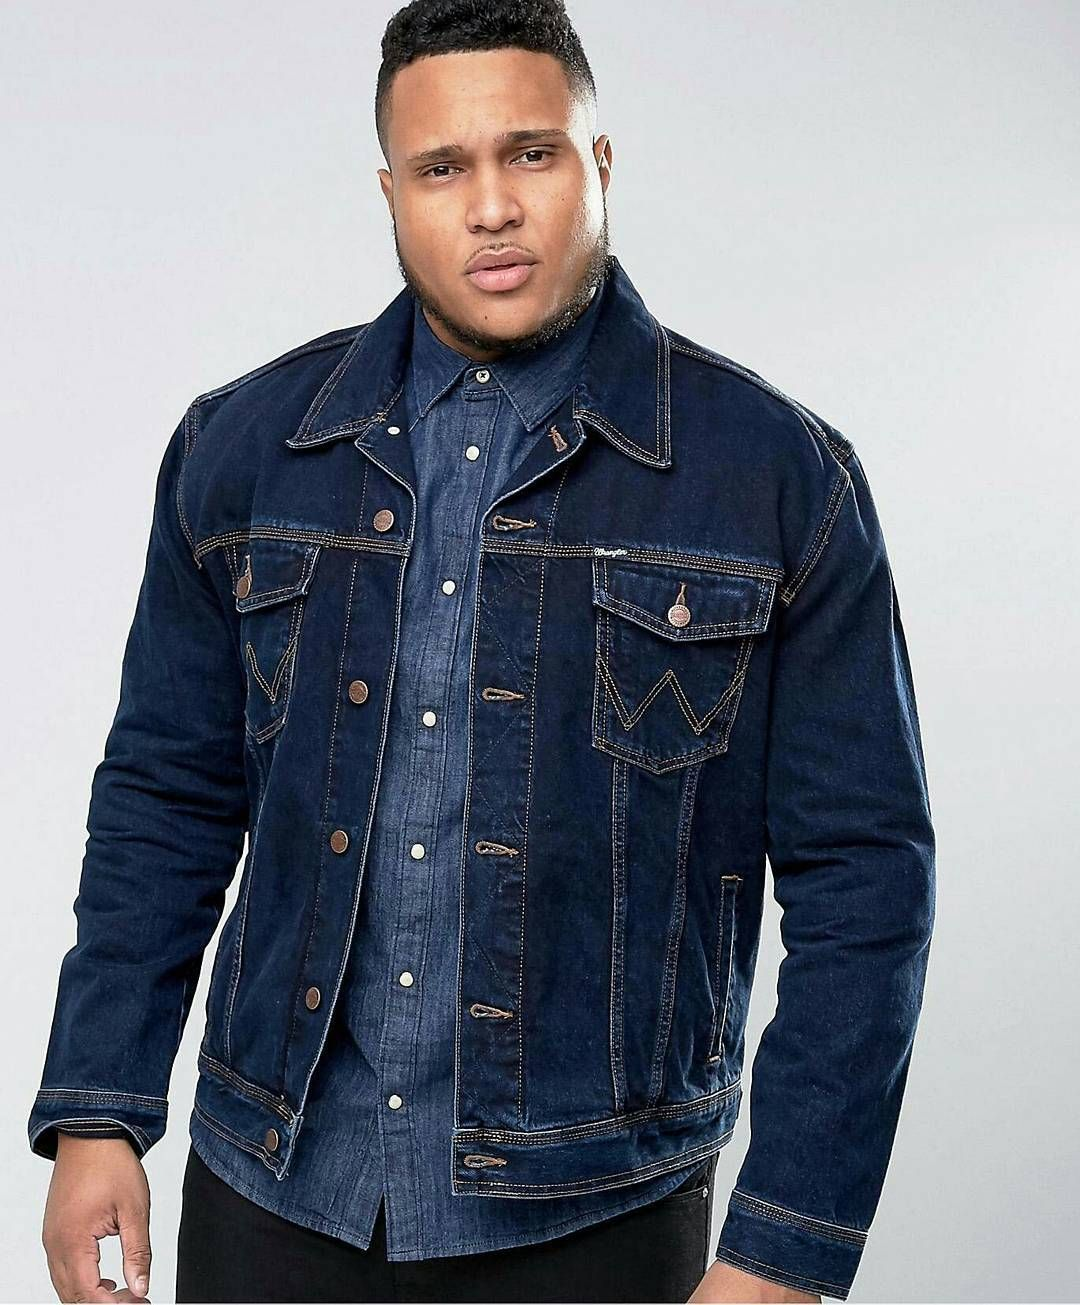 Fashion tips Plus Size Men - Conseil Mode Homme grande taille -  chubster   barnab b38ac504f38e